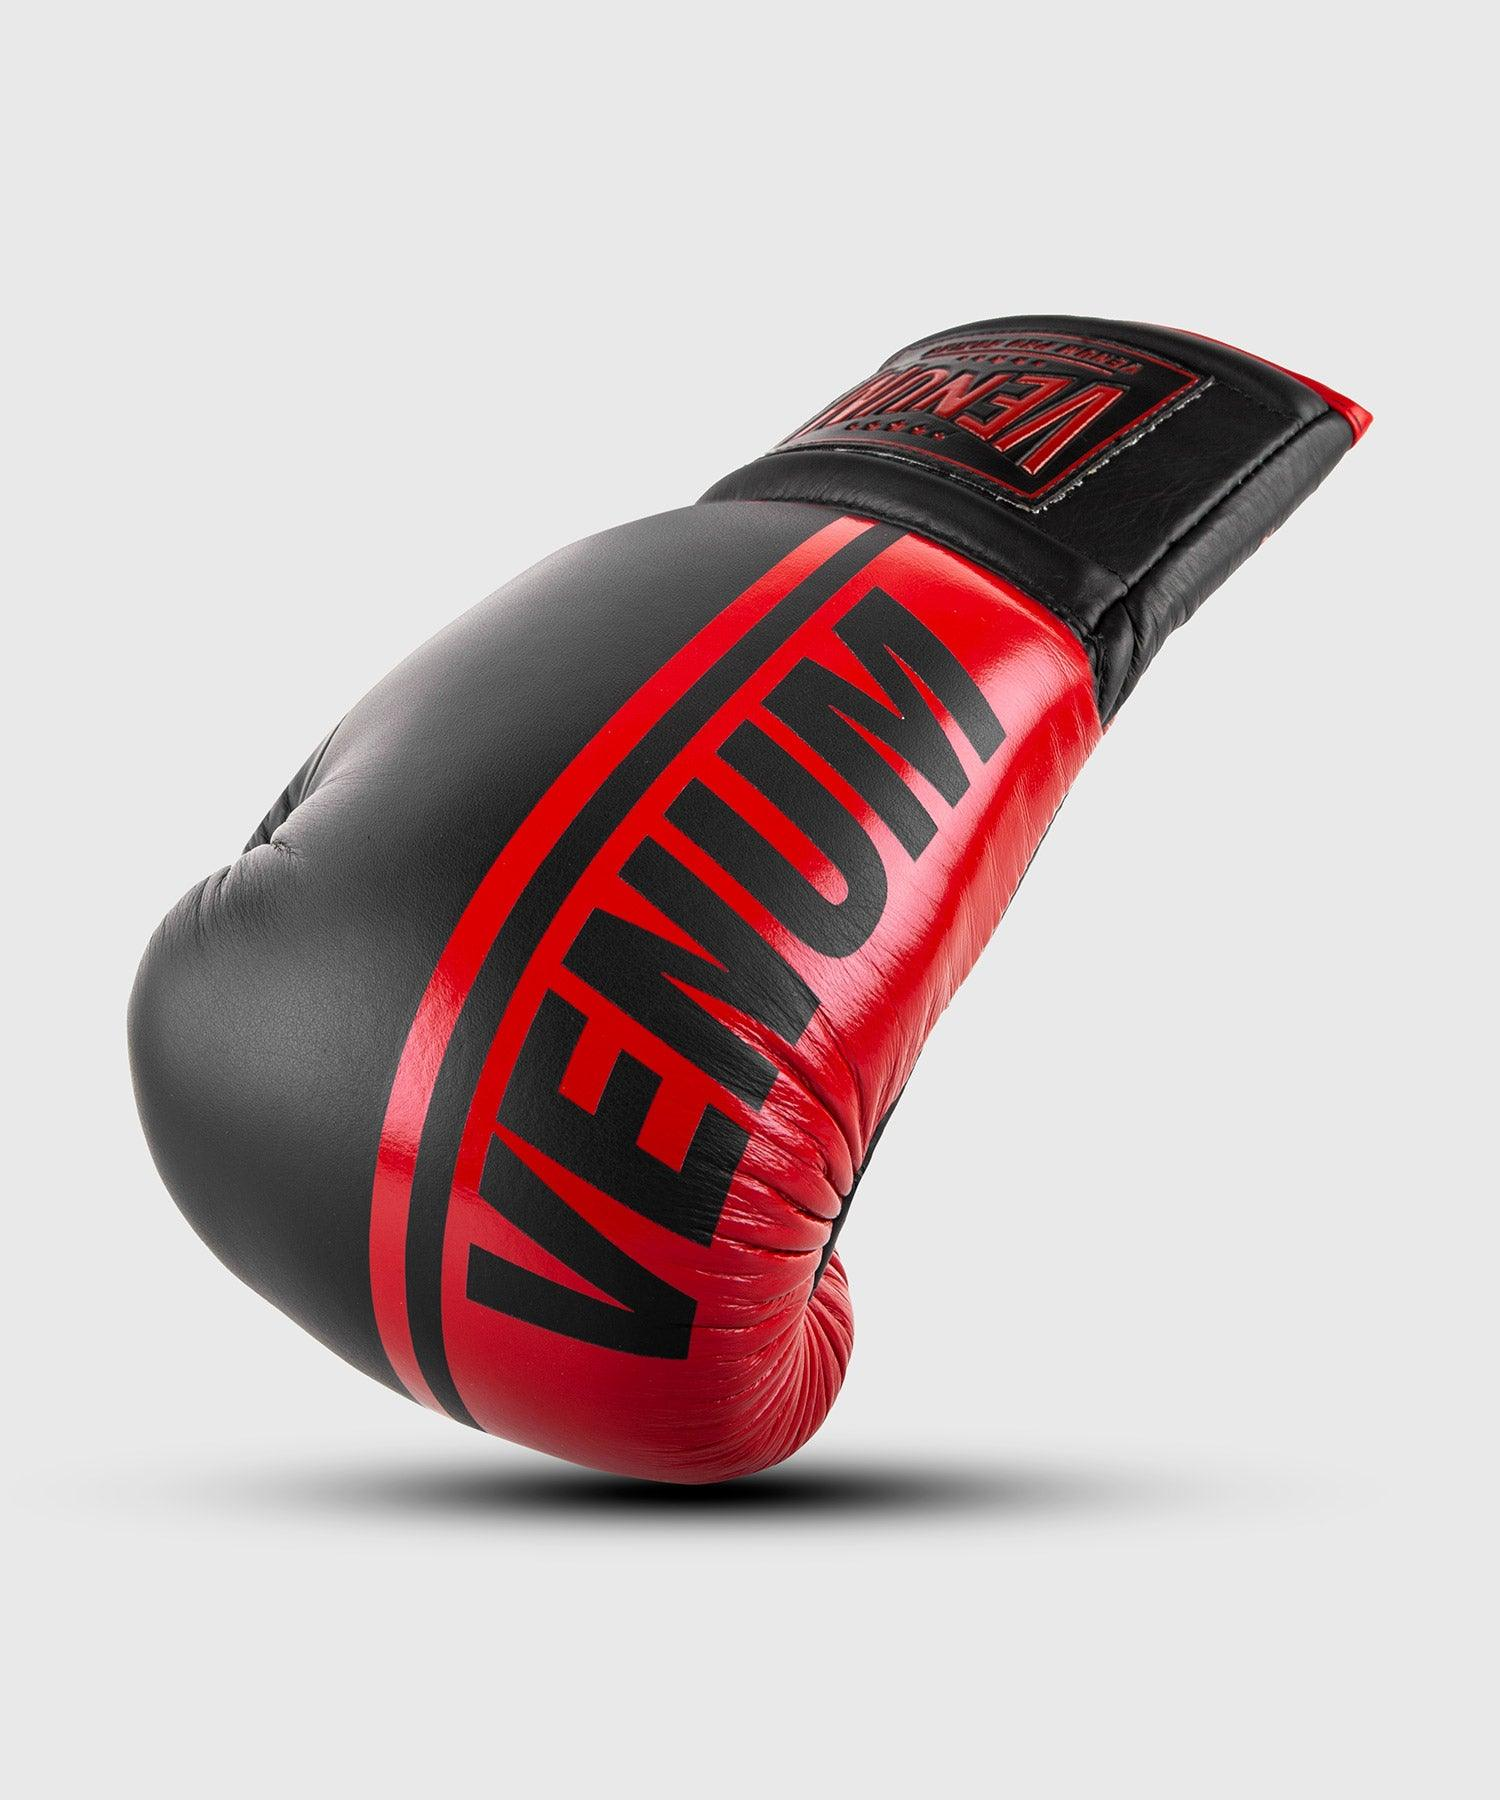 Venum Shield Pro Boxing Gloves - With Laces - Black/Red picture 1